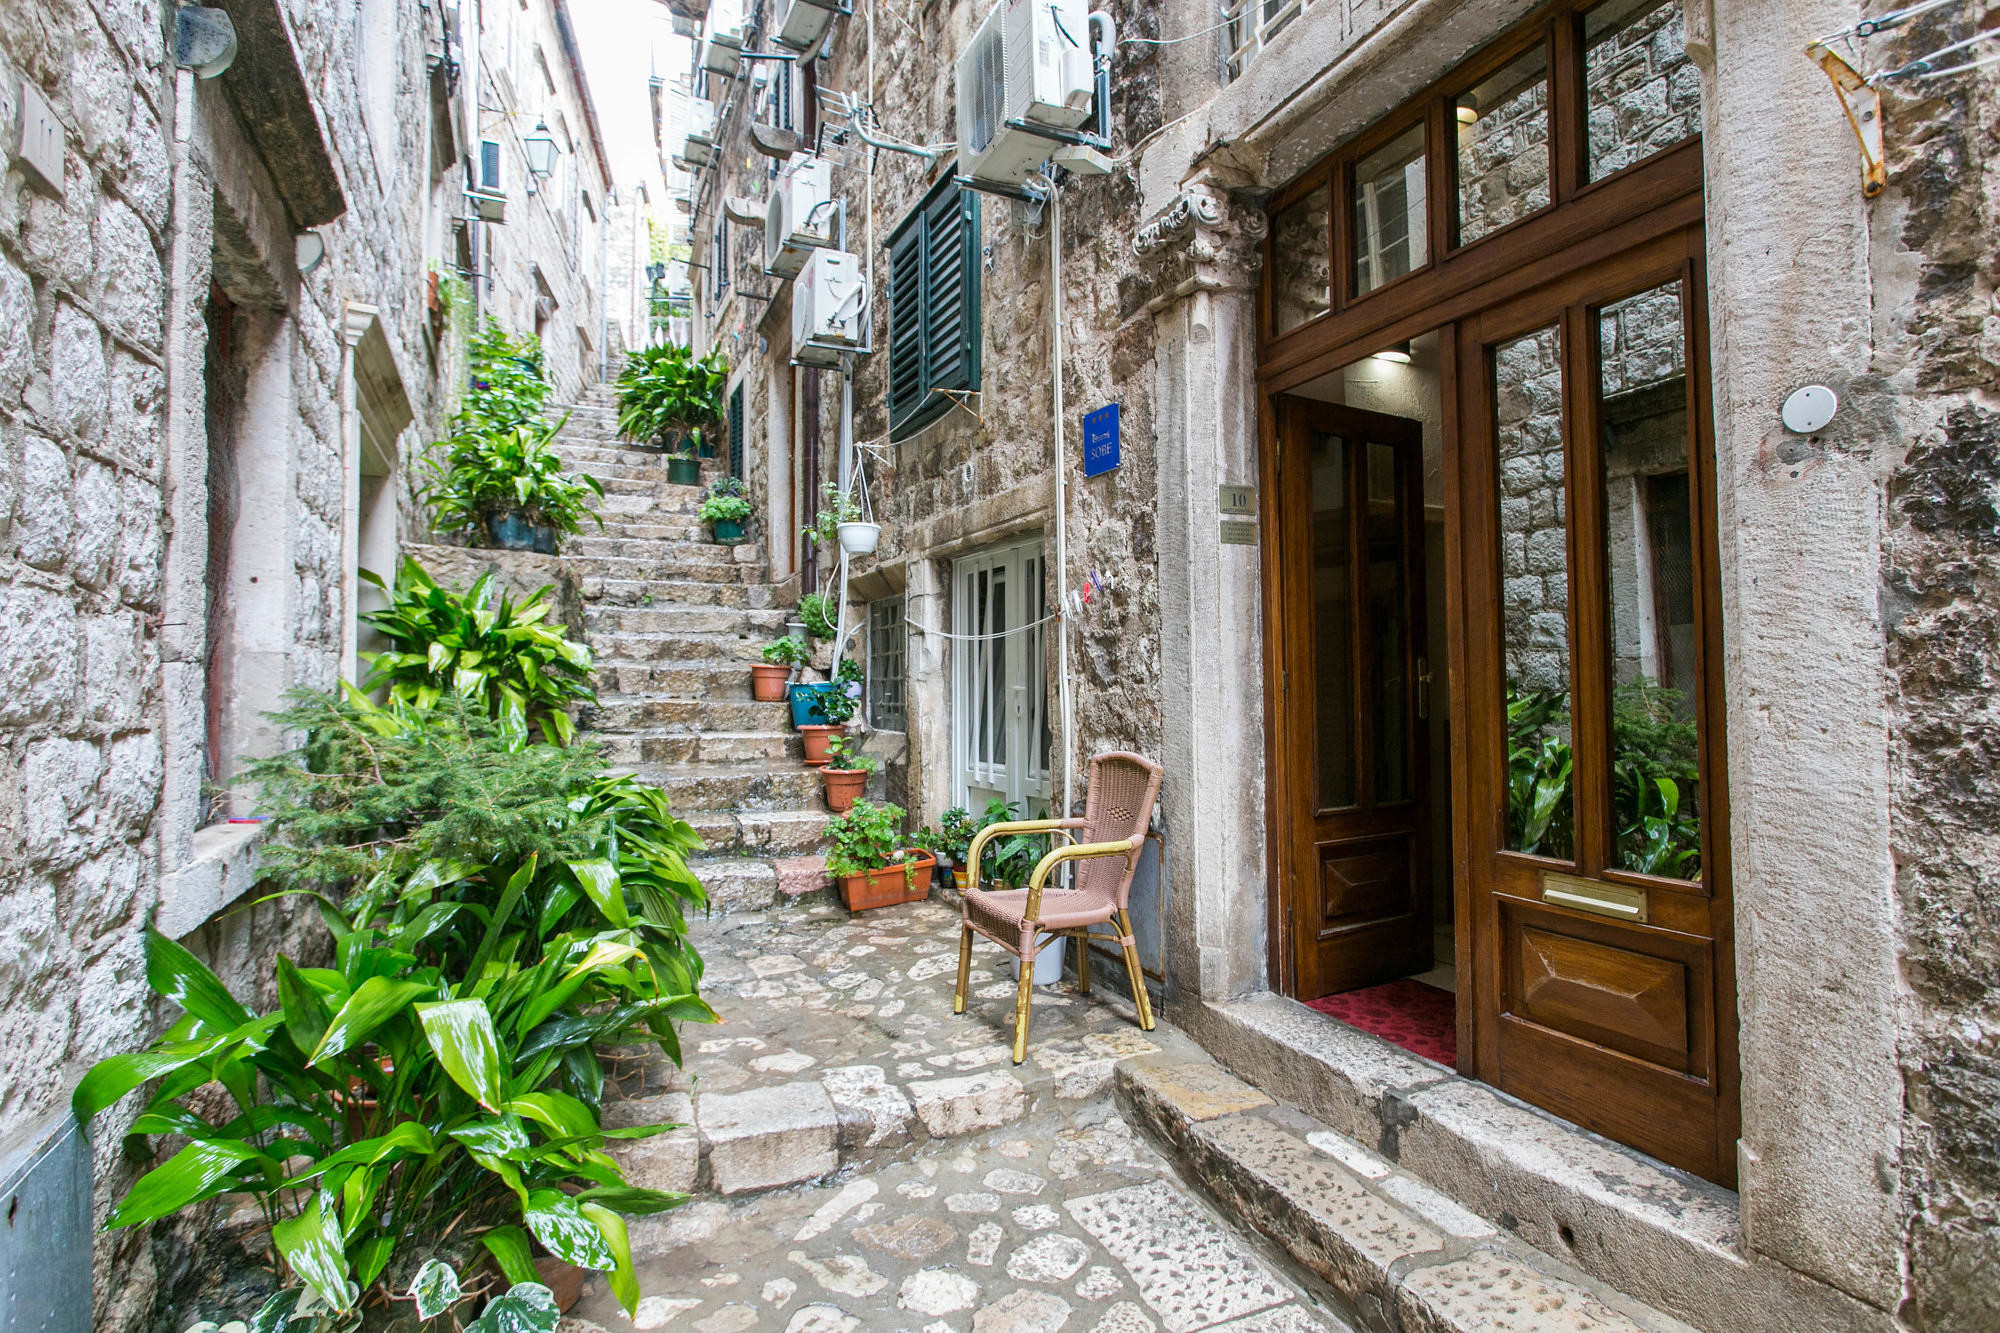 The charming stone alleyways of Dubrovnik